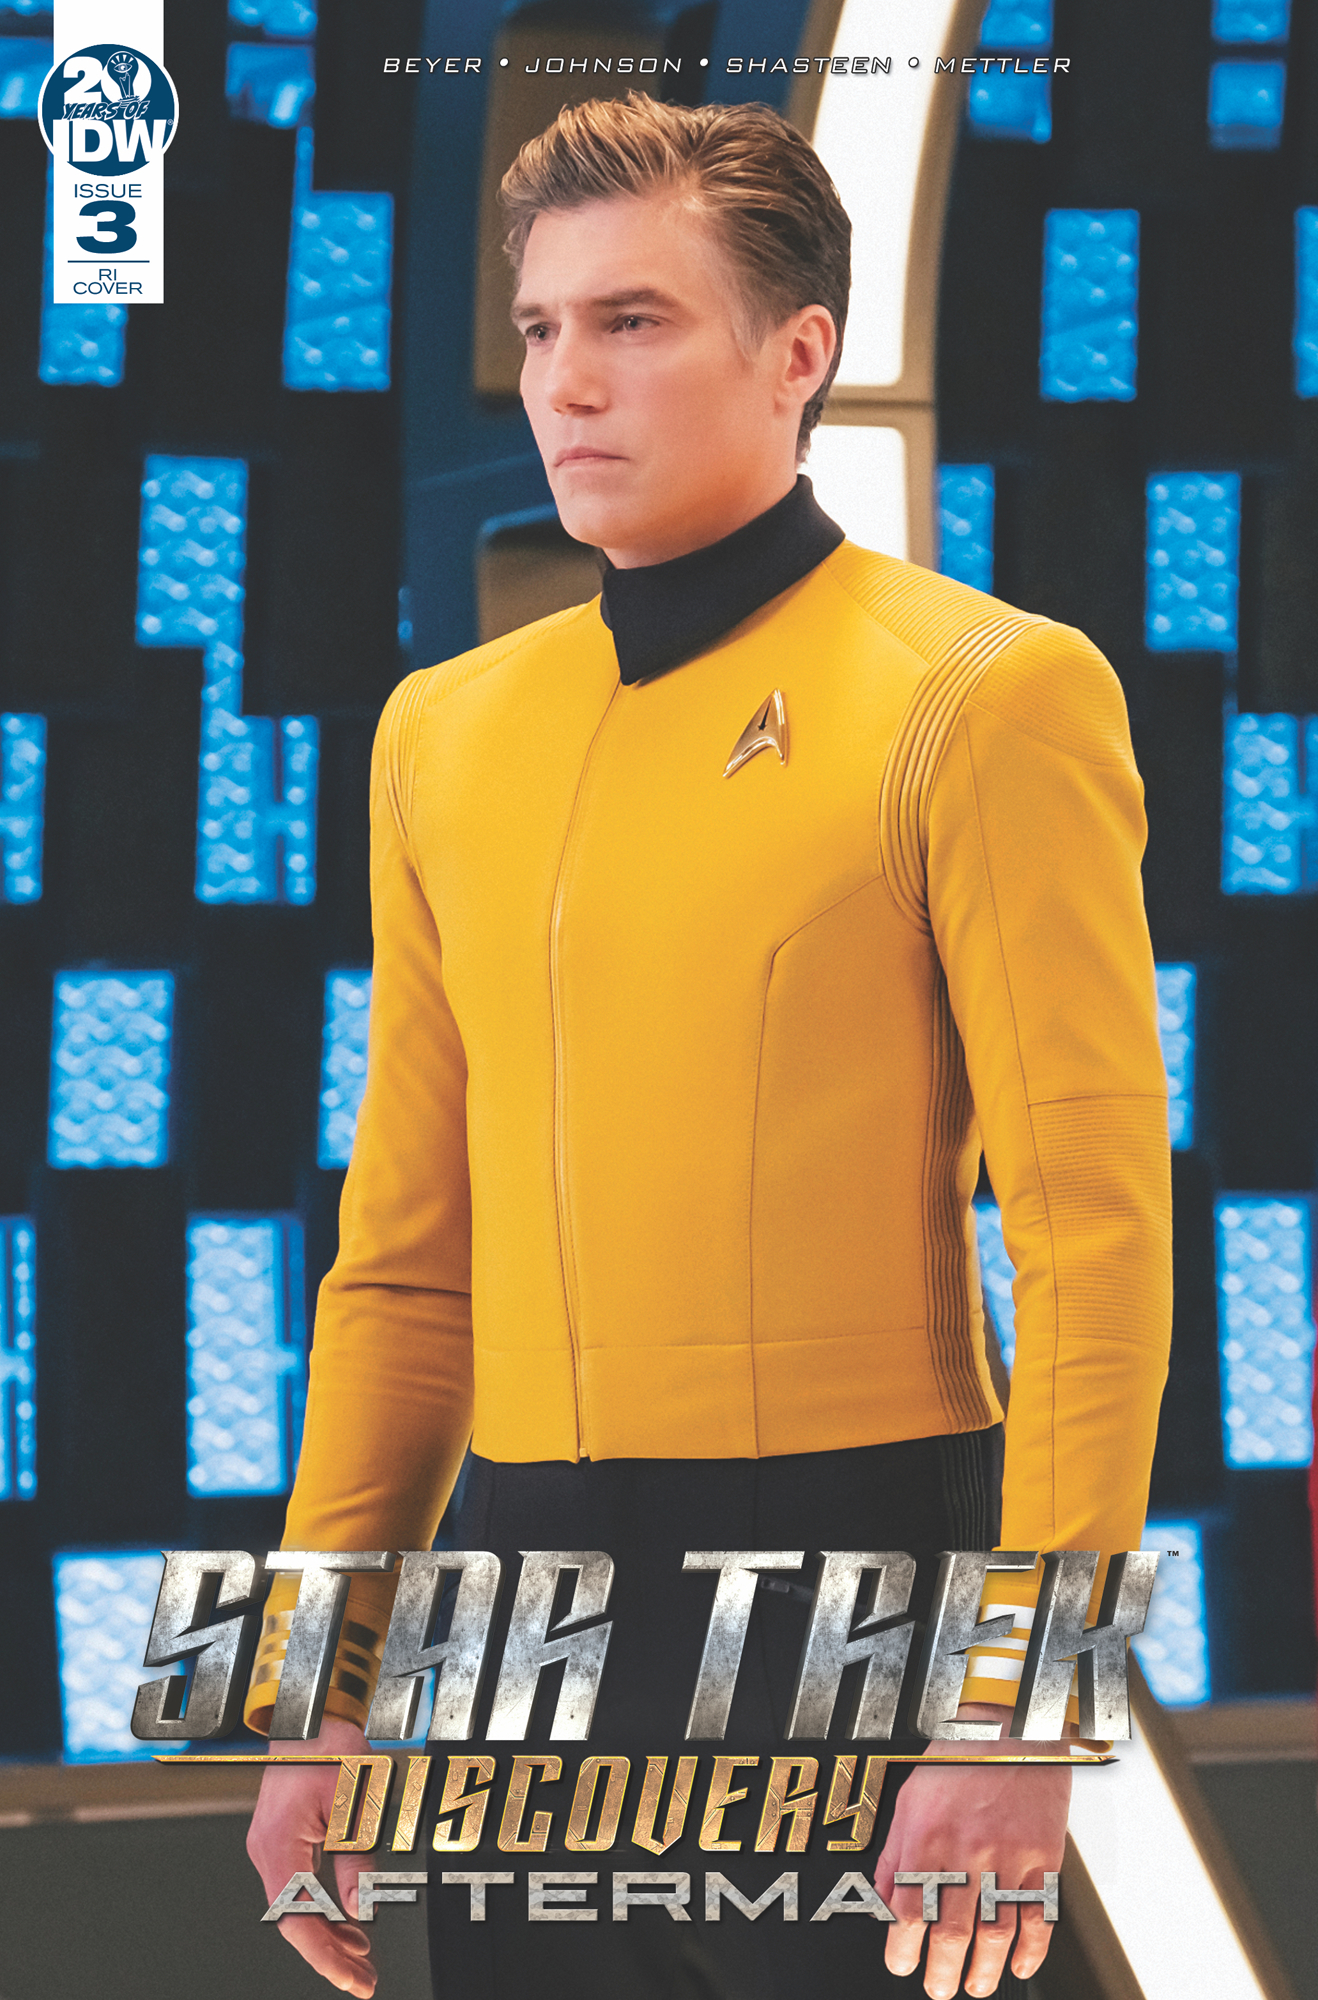 STAR TREK DISCOVERY AFTERMATH #3 (OF 3) 10 COPY INCV PHOTO (